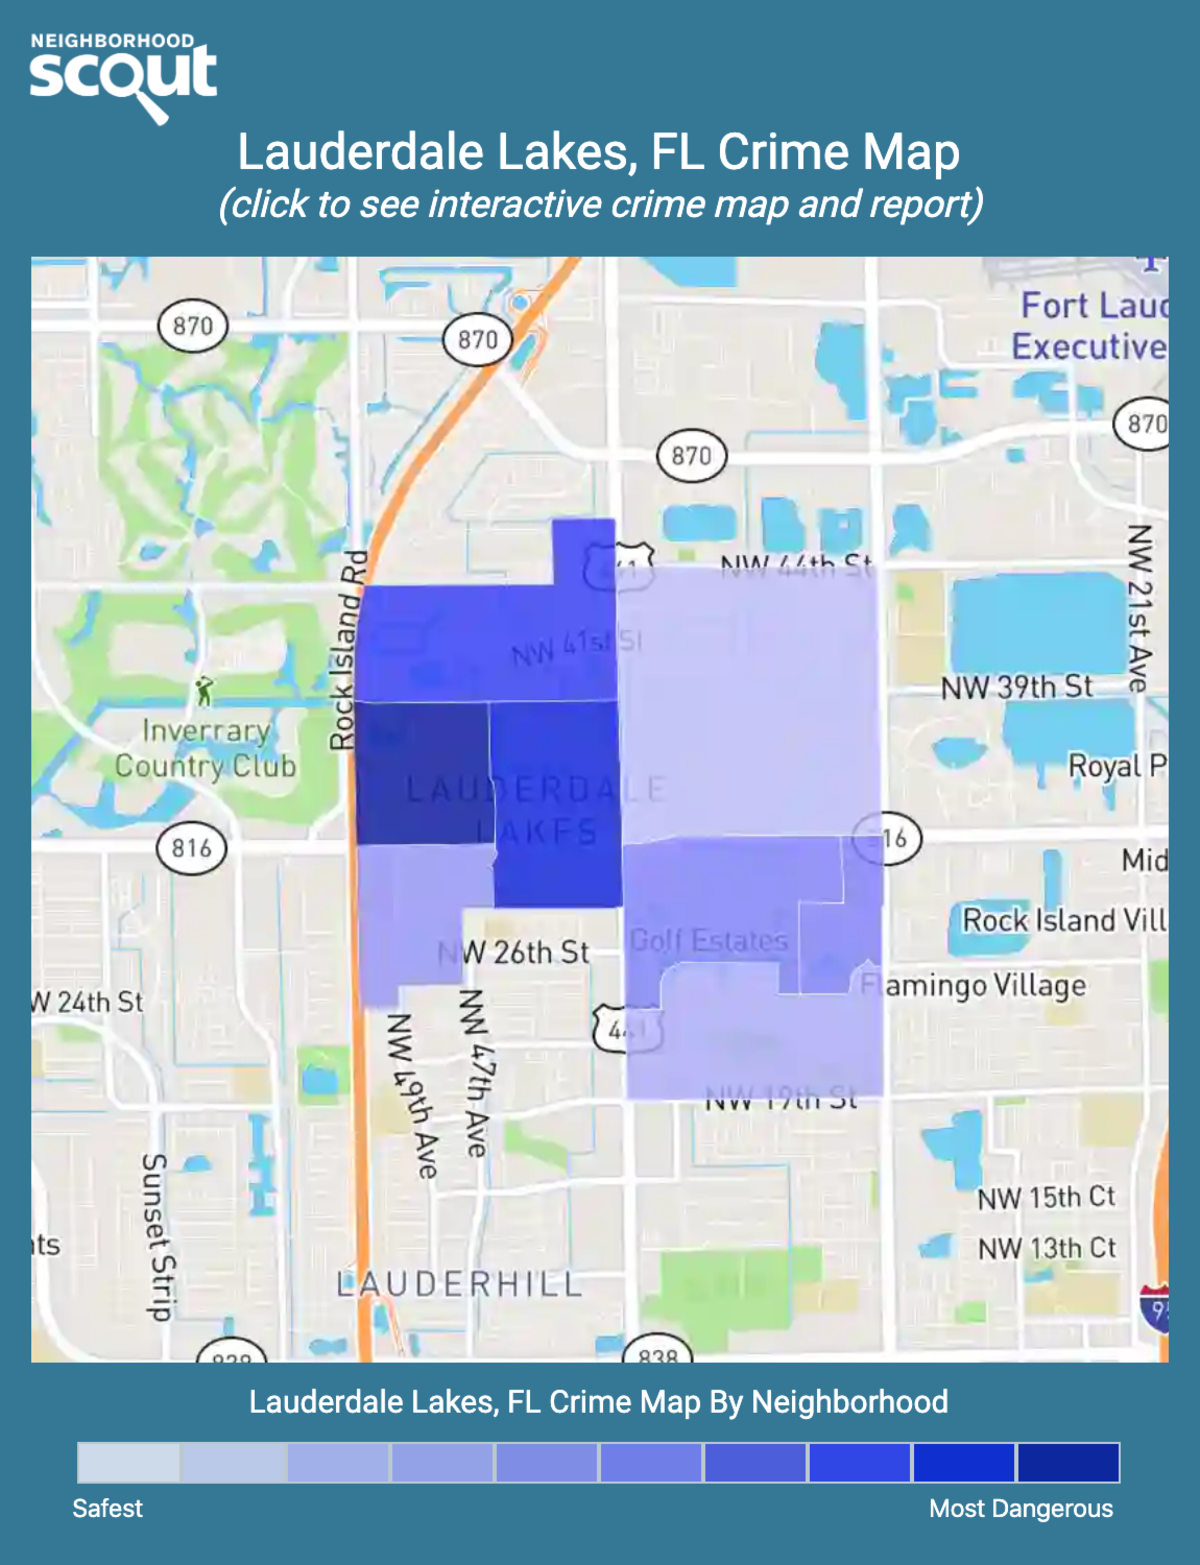 Lauderdale Lakes, Florida crime map